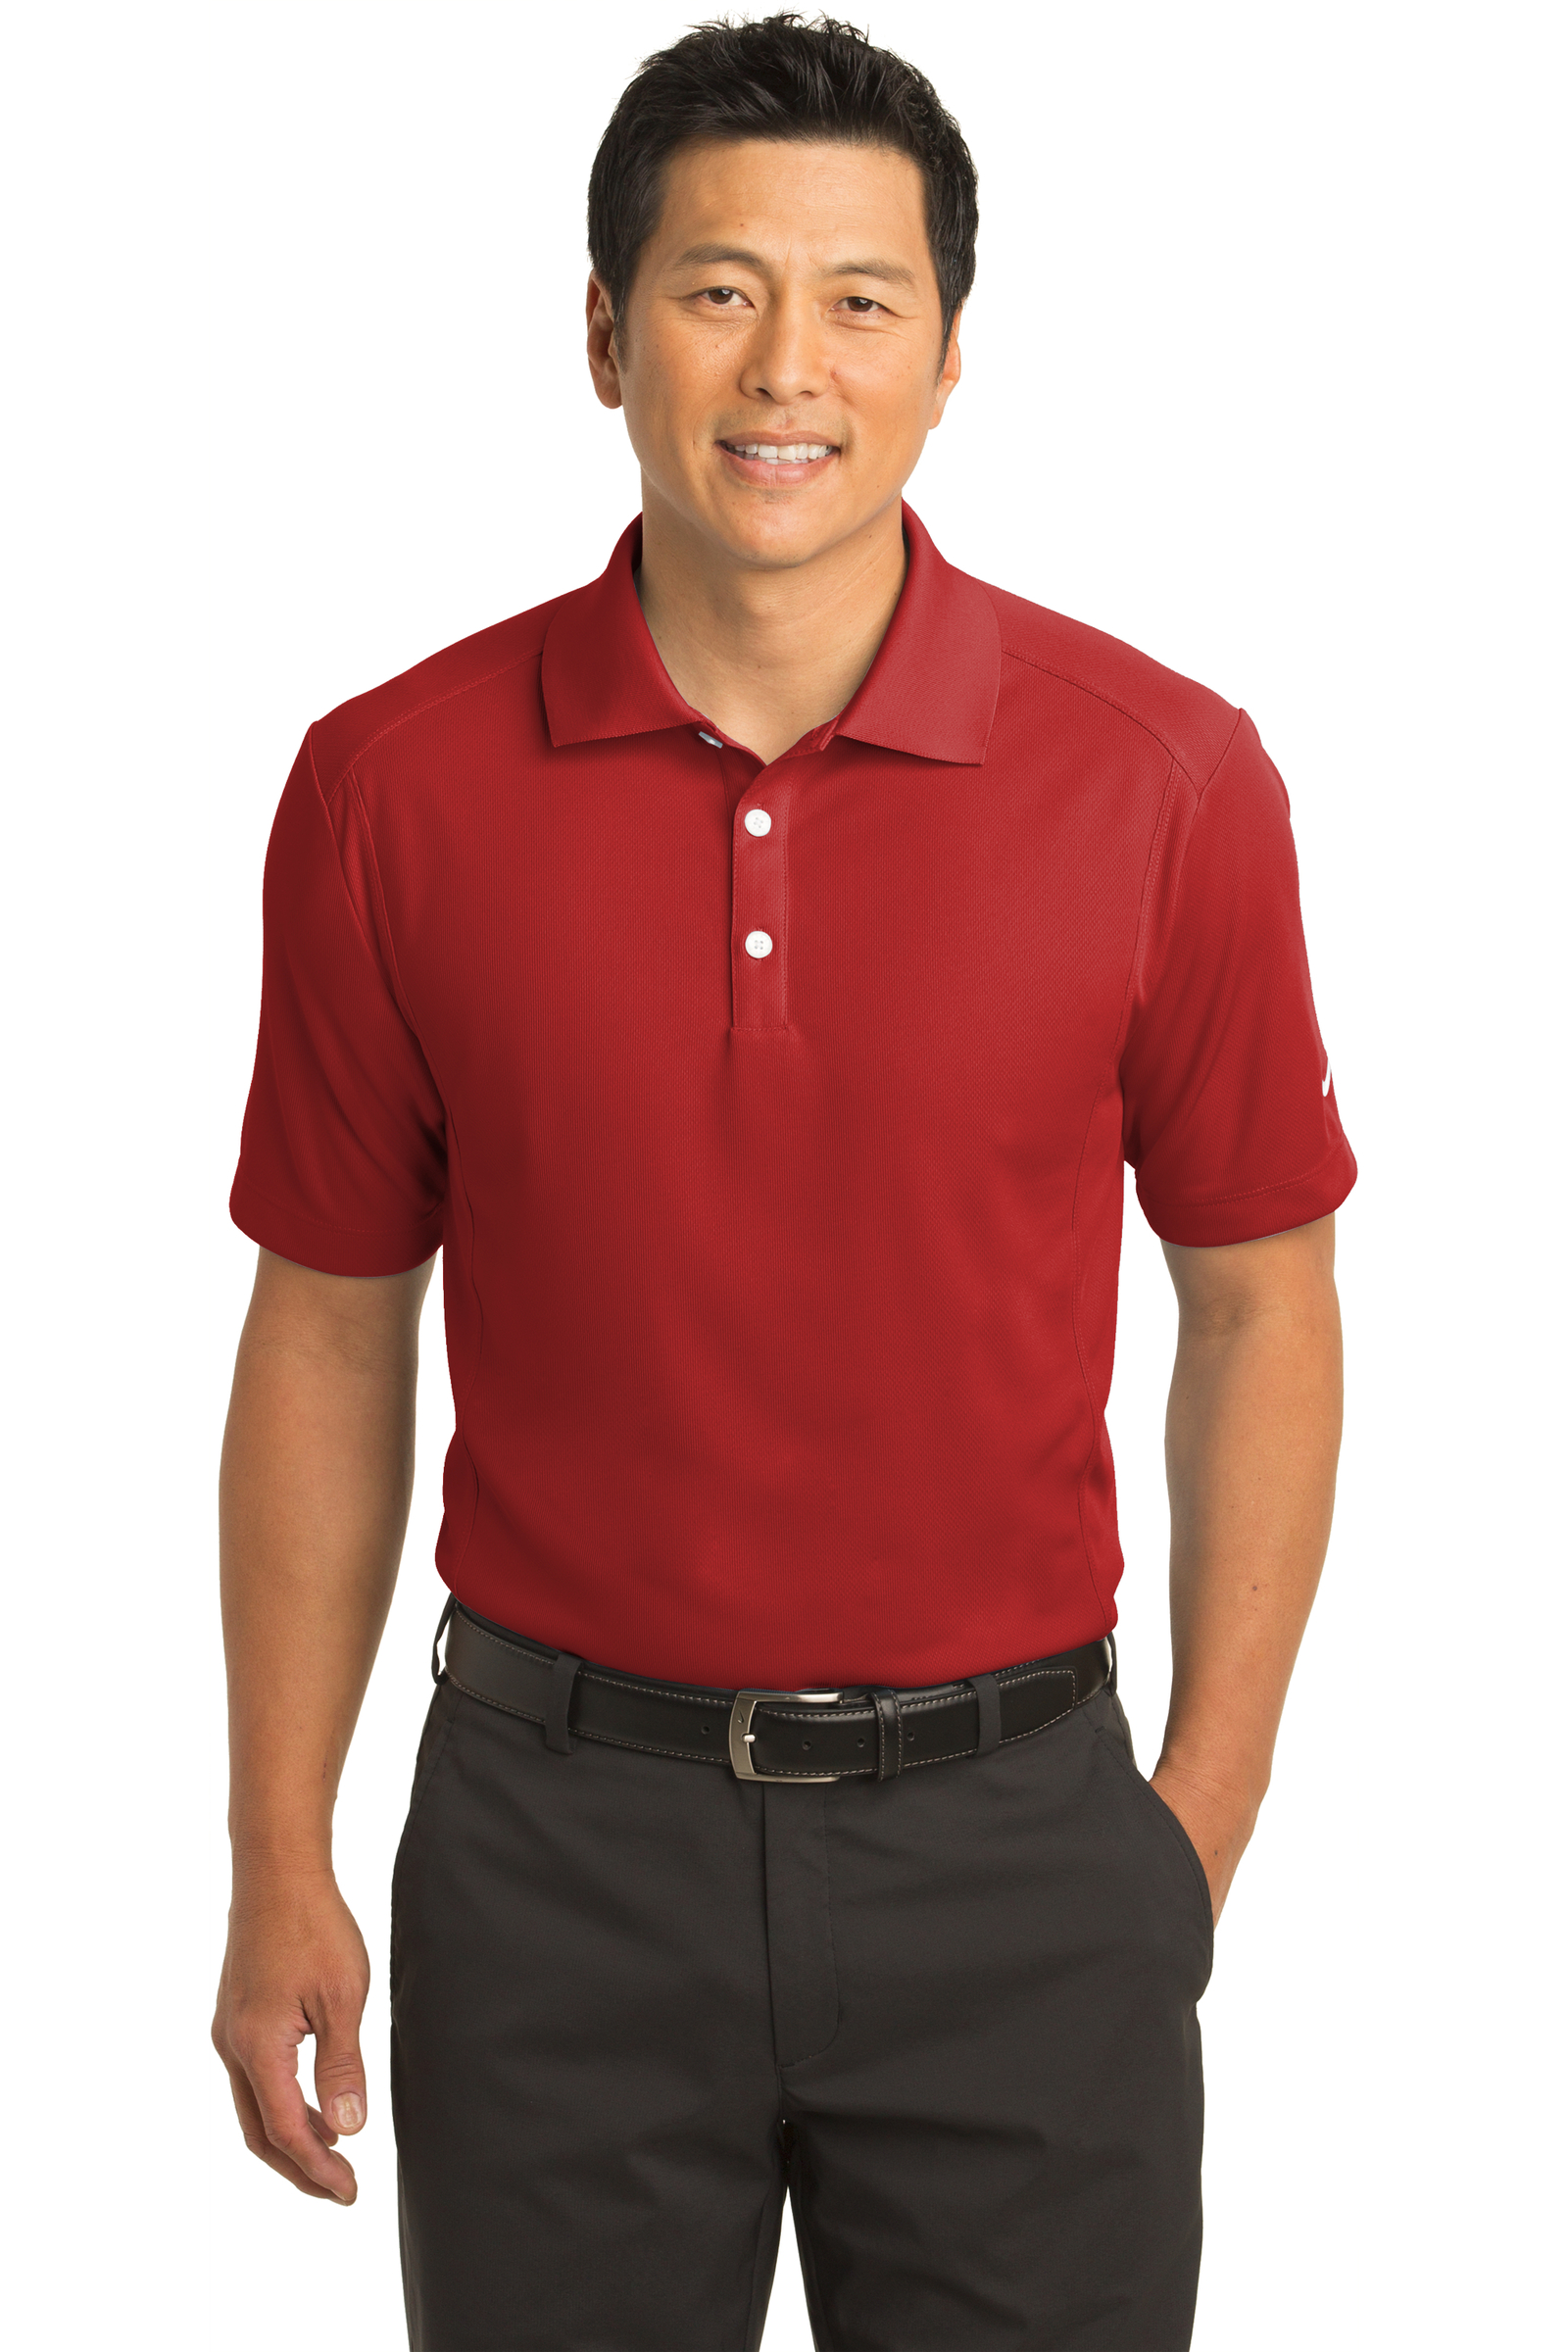 Nike Embroidered Men's Dri-FIT Classic Polo